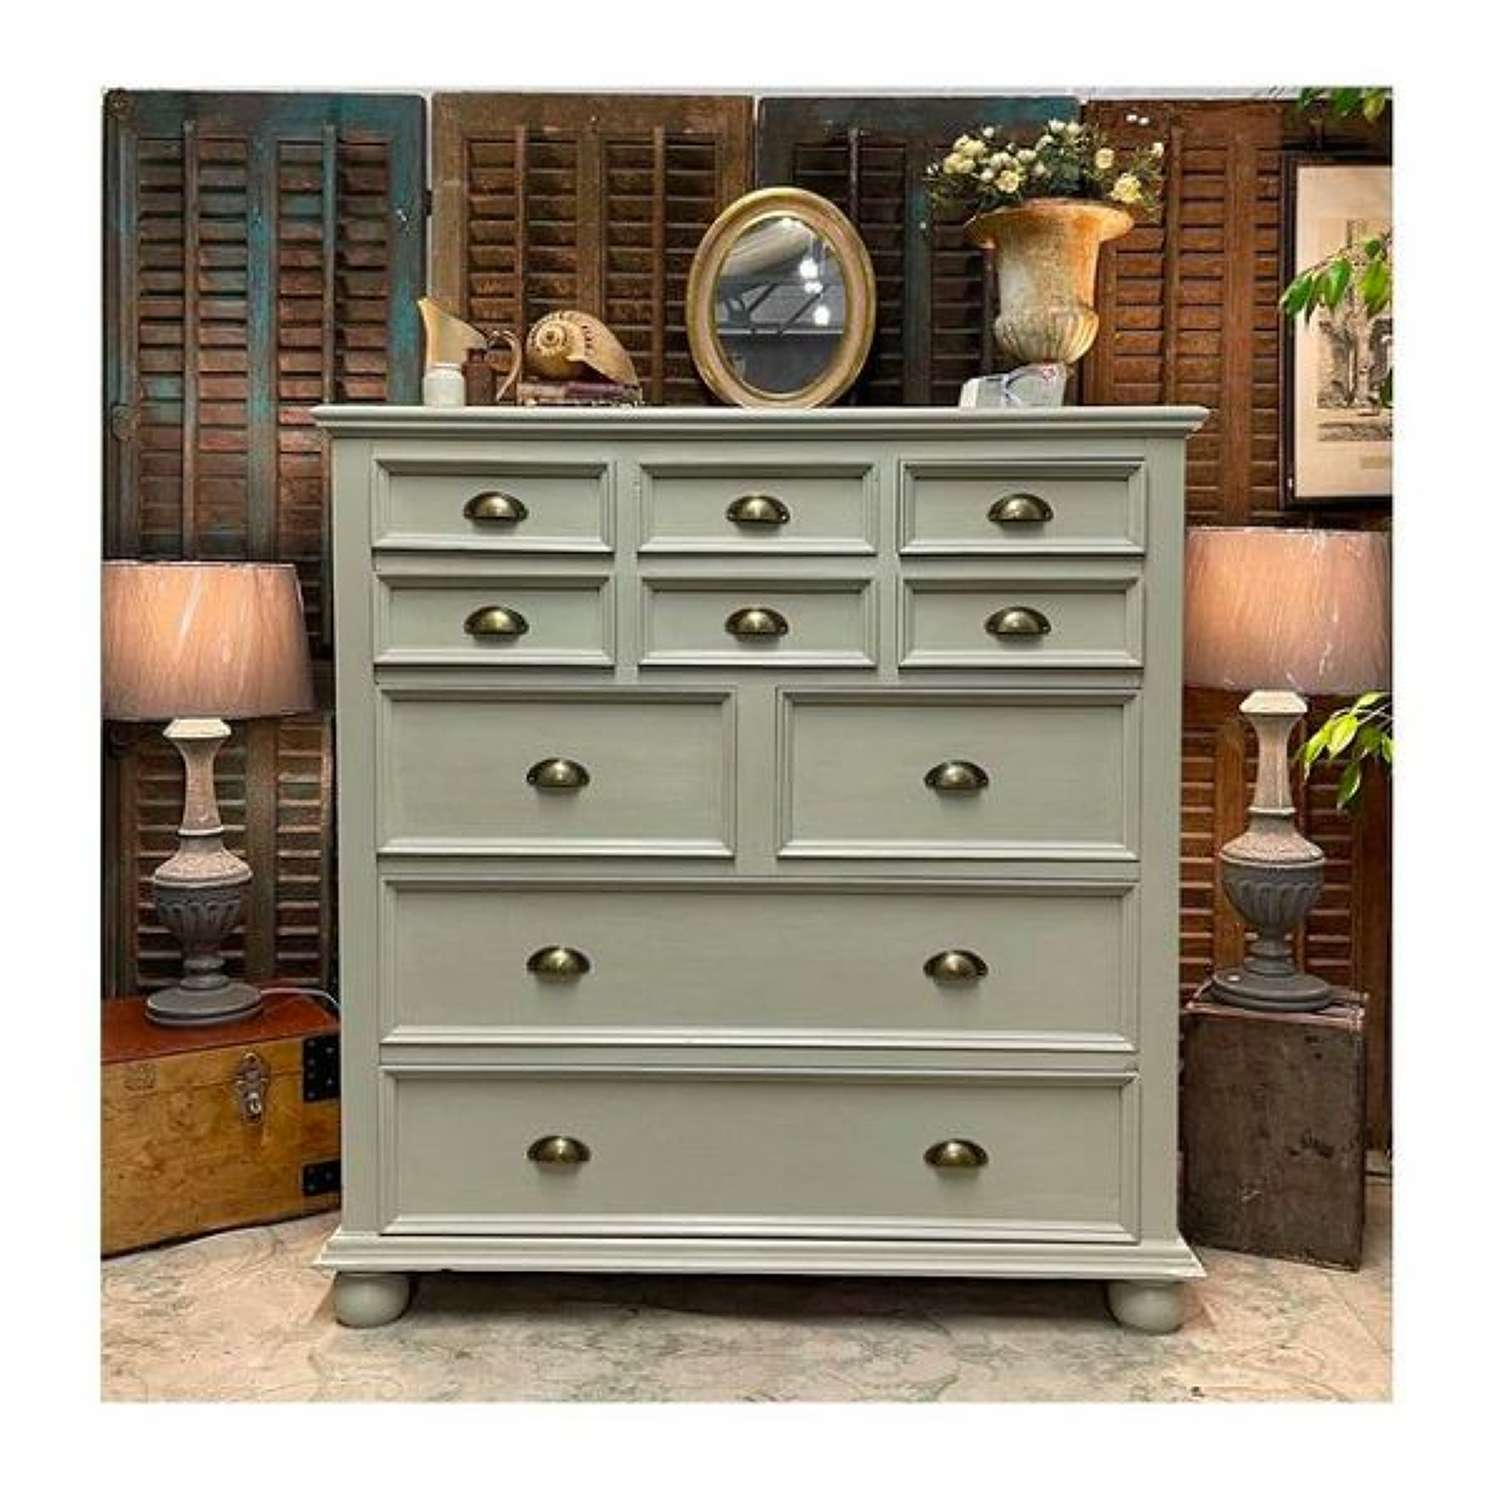 Chest of drawers painted in Pebble Grey